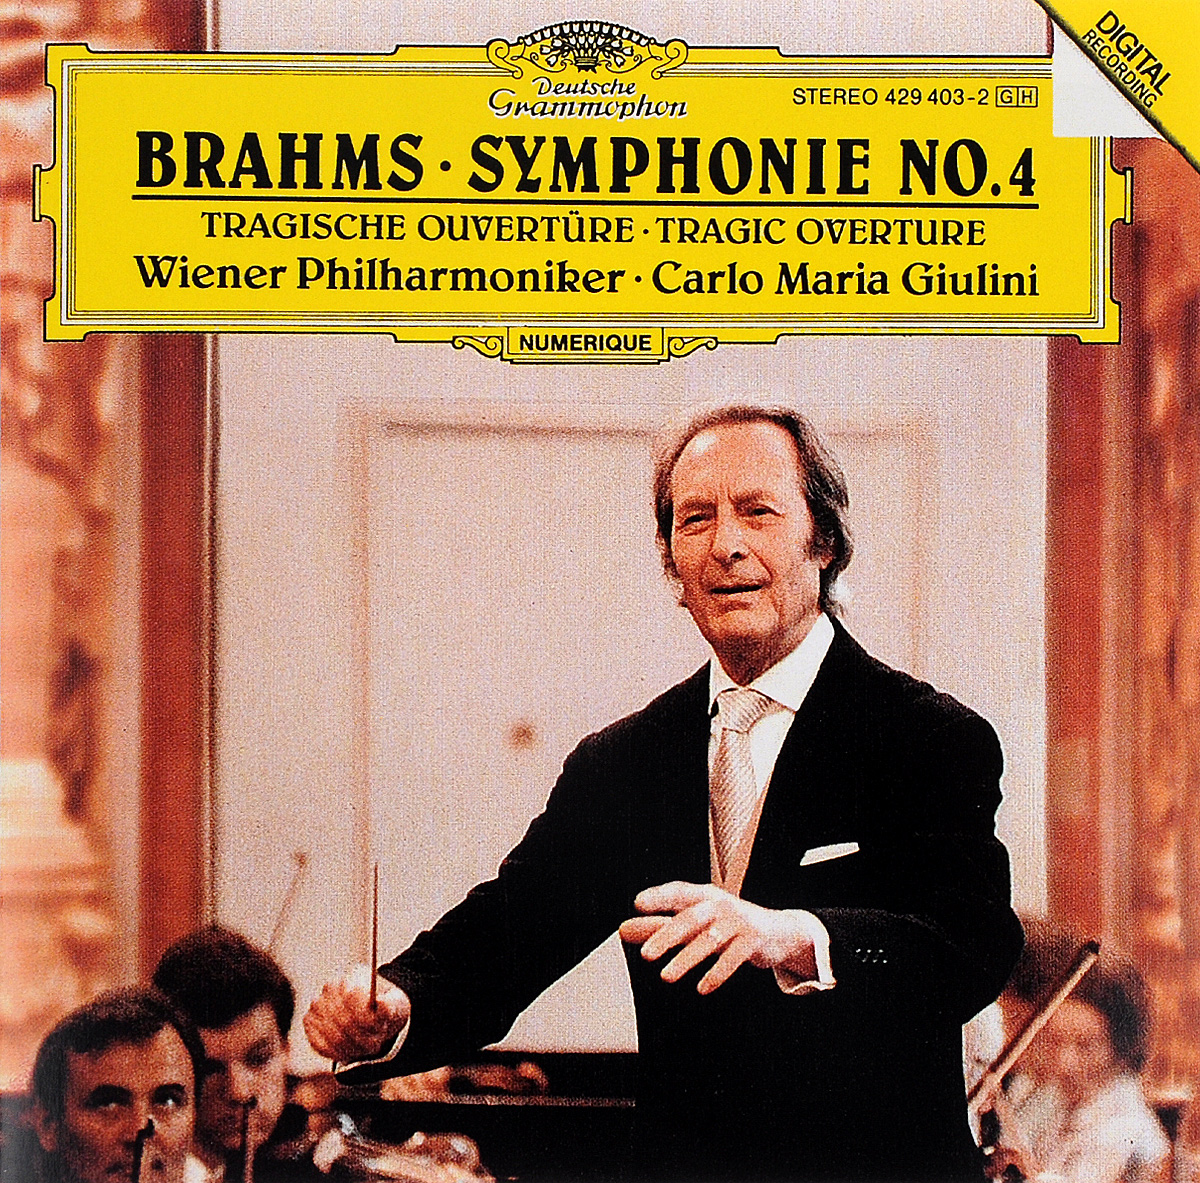 Wiener Philharmoniker,Карло Джулини Carlo Maria Giulini. Brahms. Symphonie No. 4 / Tragische Ouverture hoco mini bluetooth earphone with microphone wireless headset for phone invisible earpiece music in ear hook handsfree for car